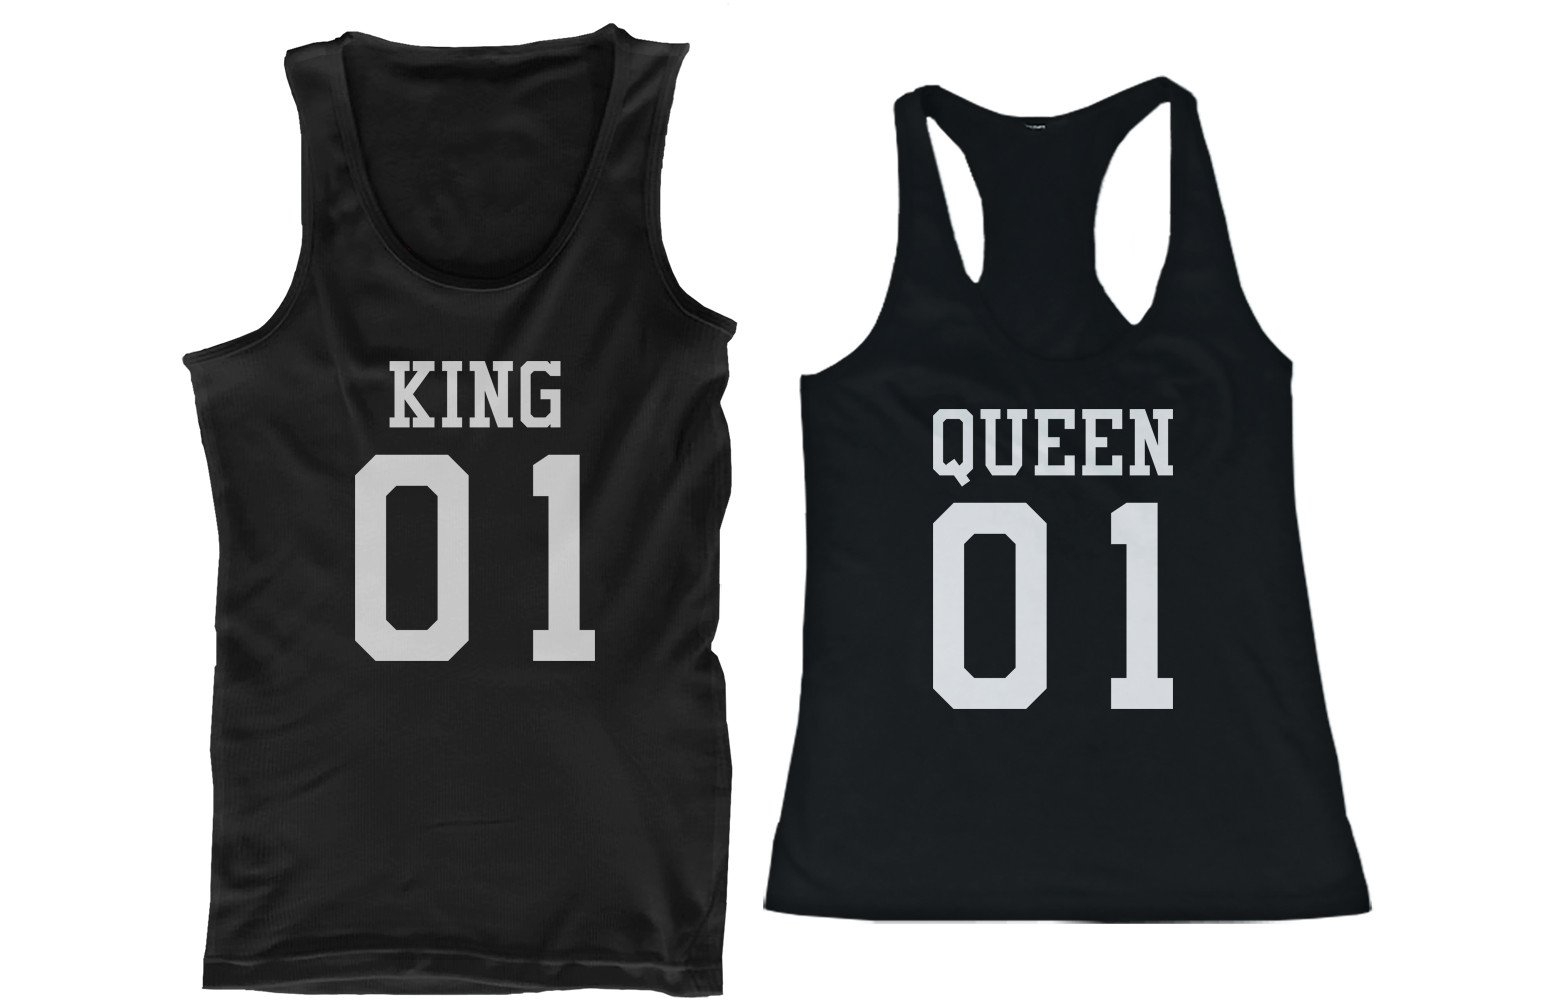 f197aa4777 King 01 Queen 01 Couple Tank Tops Matching Tanks Summer Vacation Tee